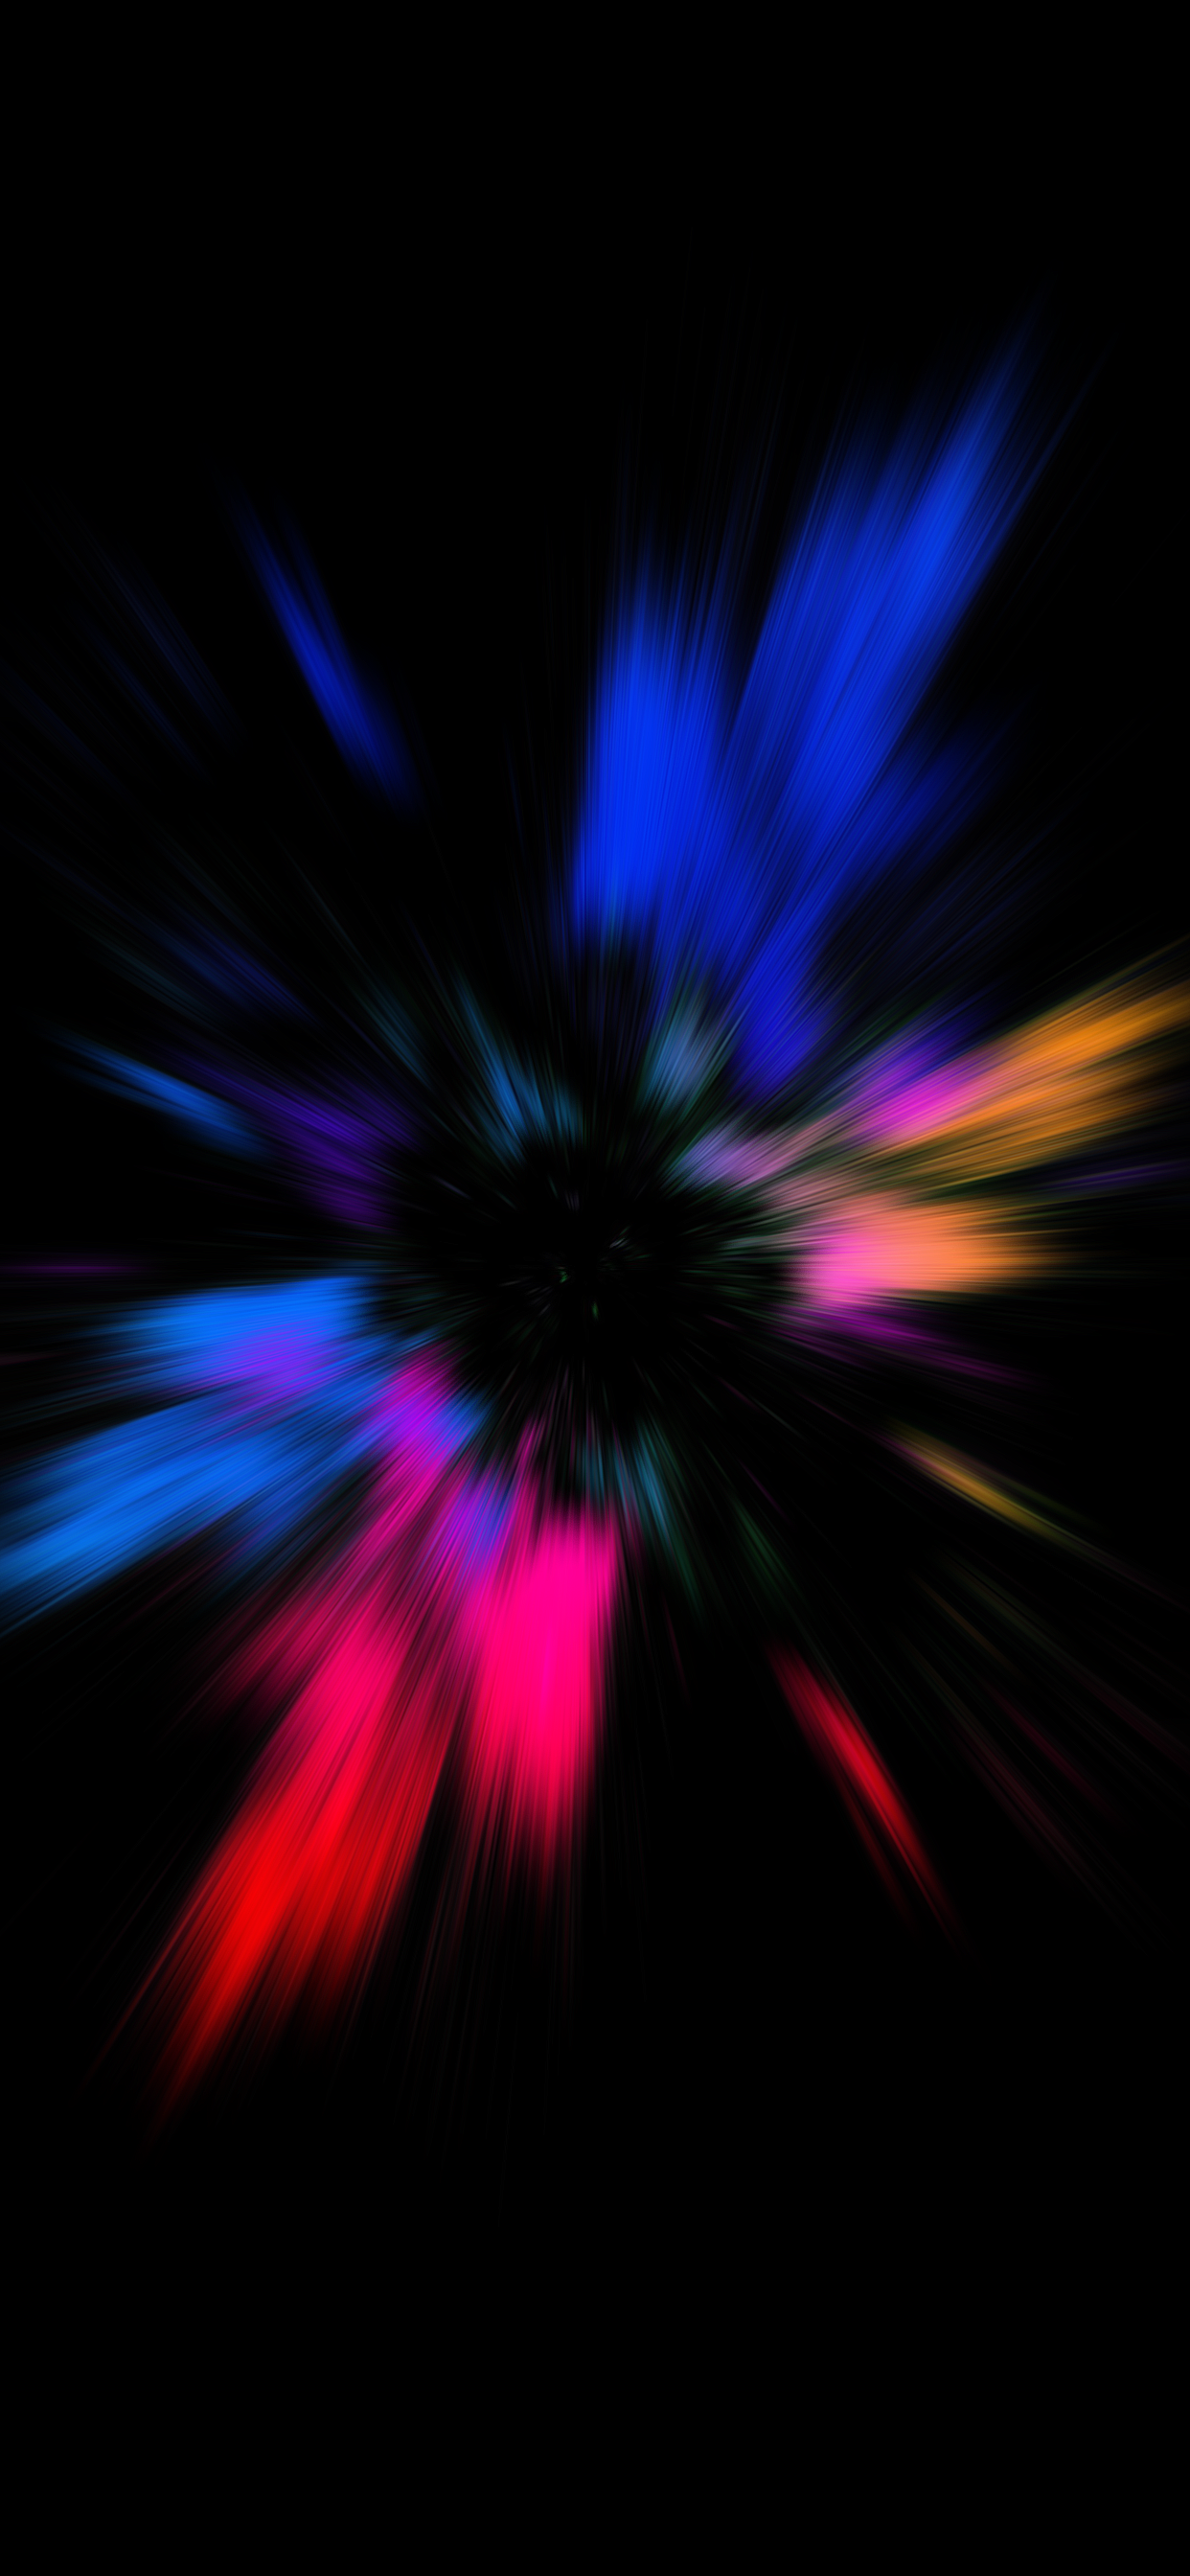 iPhone wallpaper abstract explosion blur Abstract